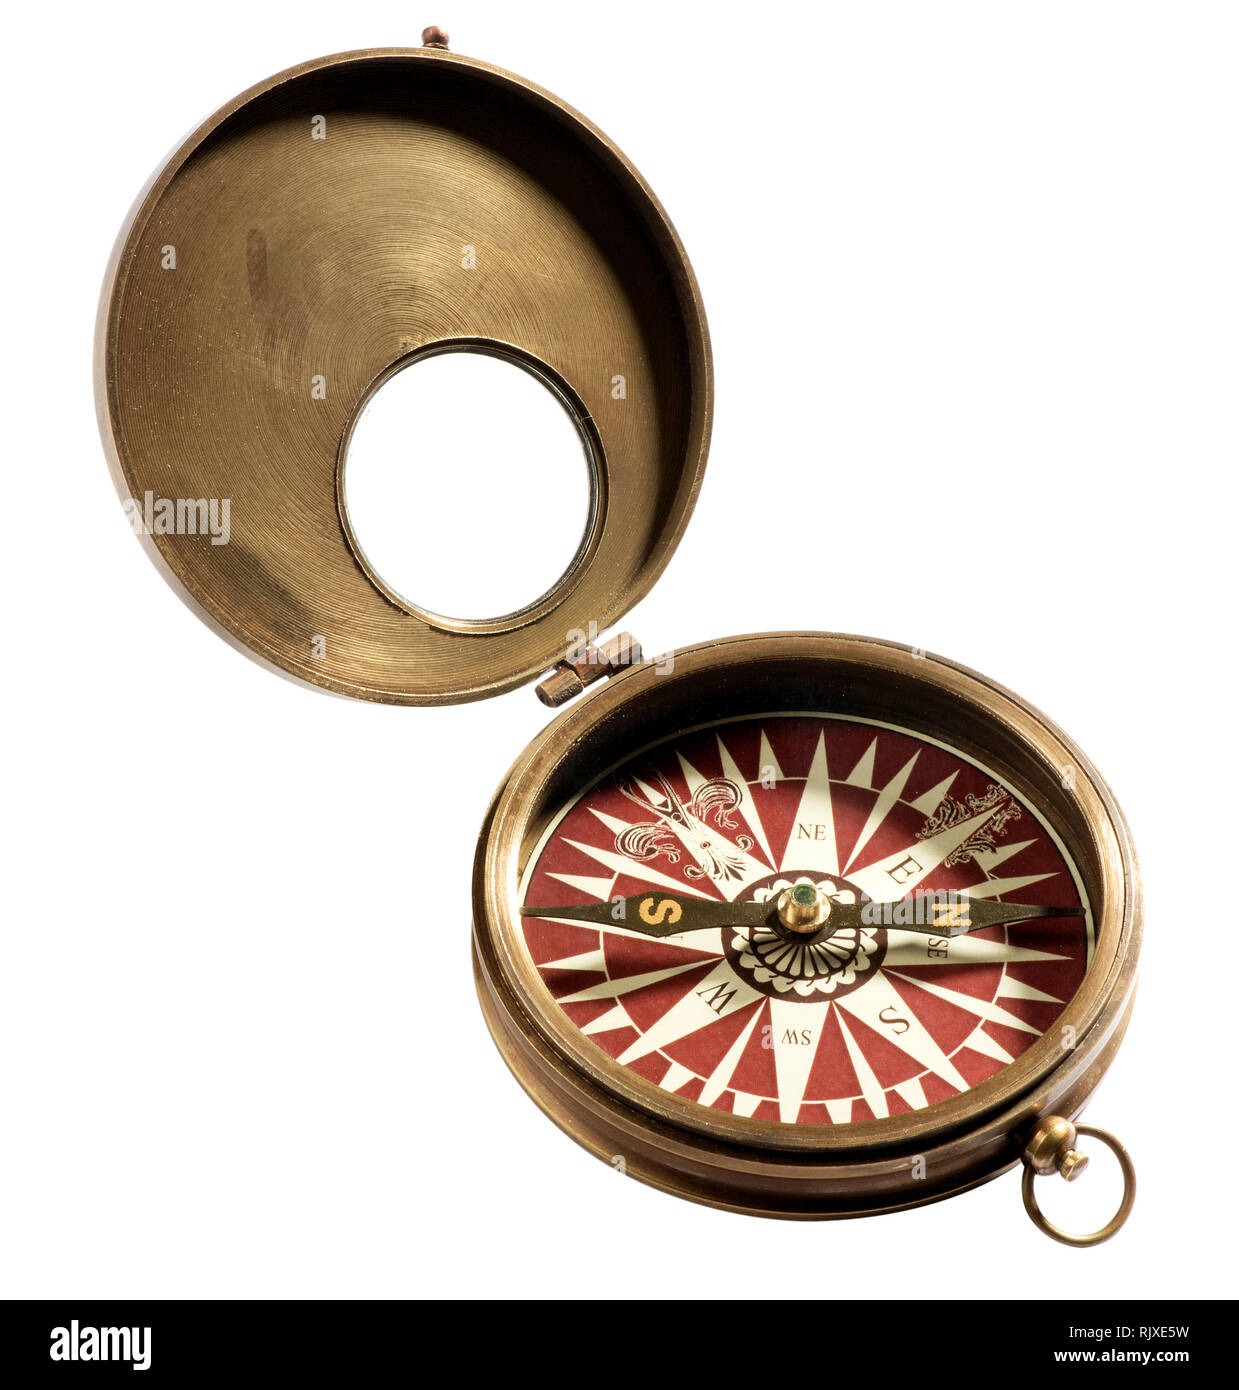 Old vintage compass isolated on white background, viewed in close-up - Stock Image